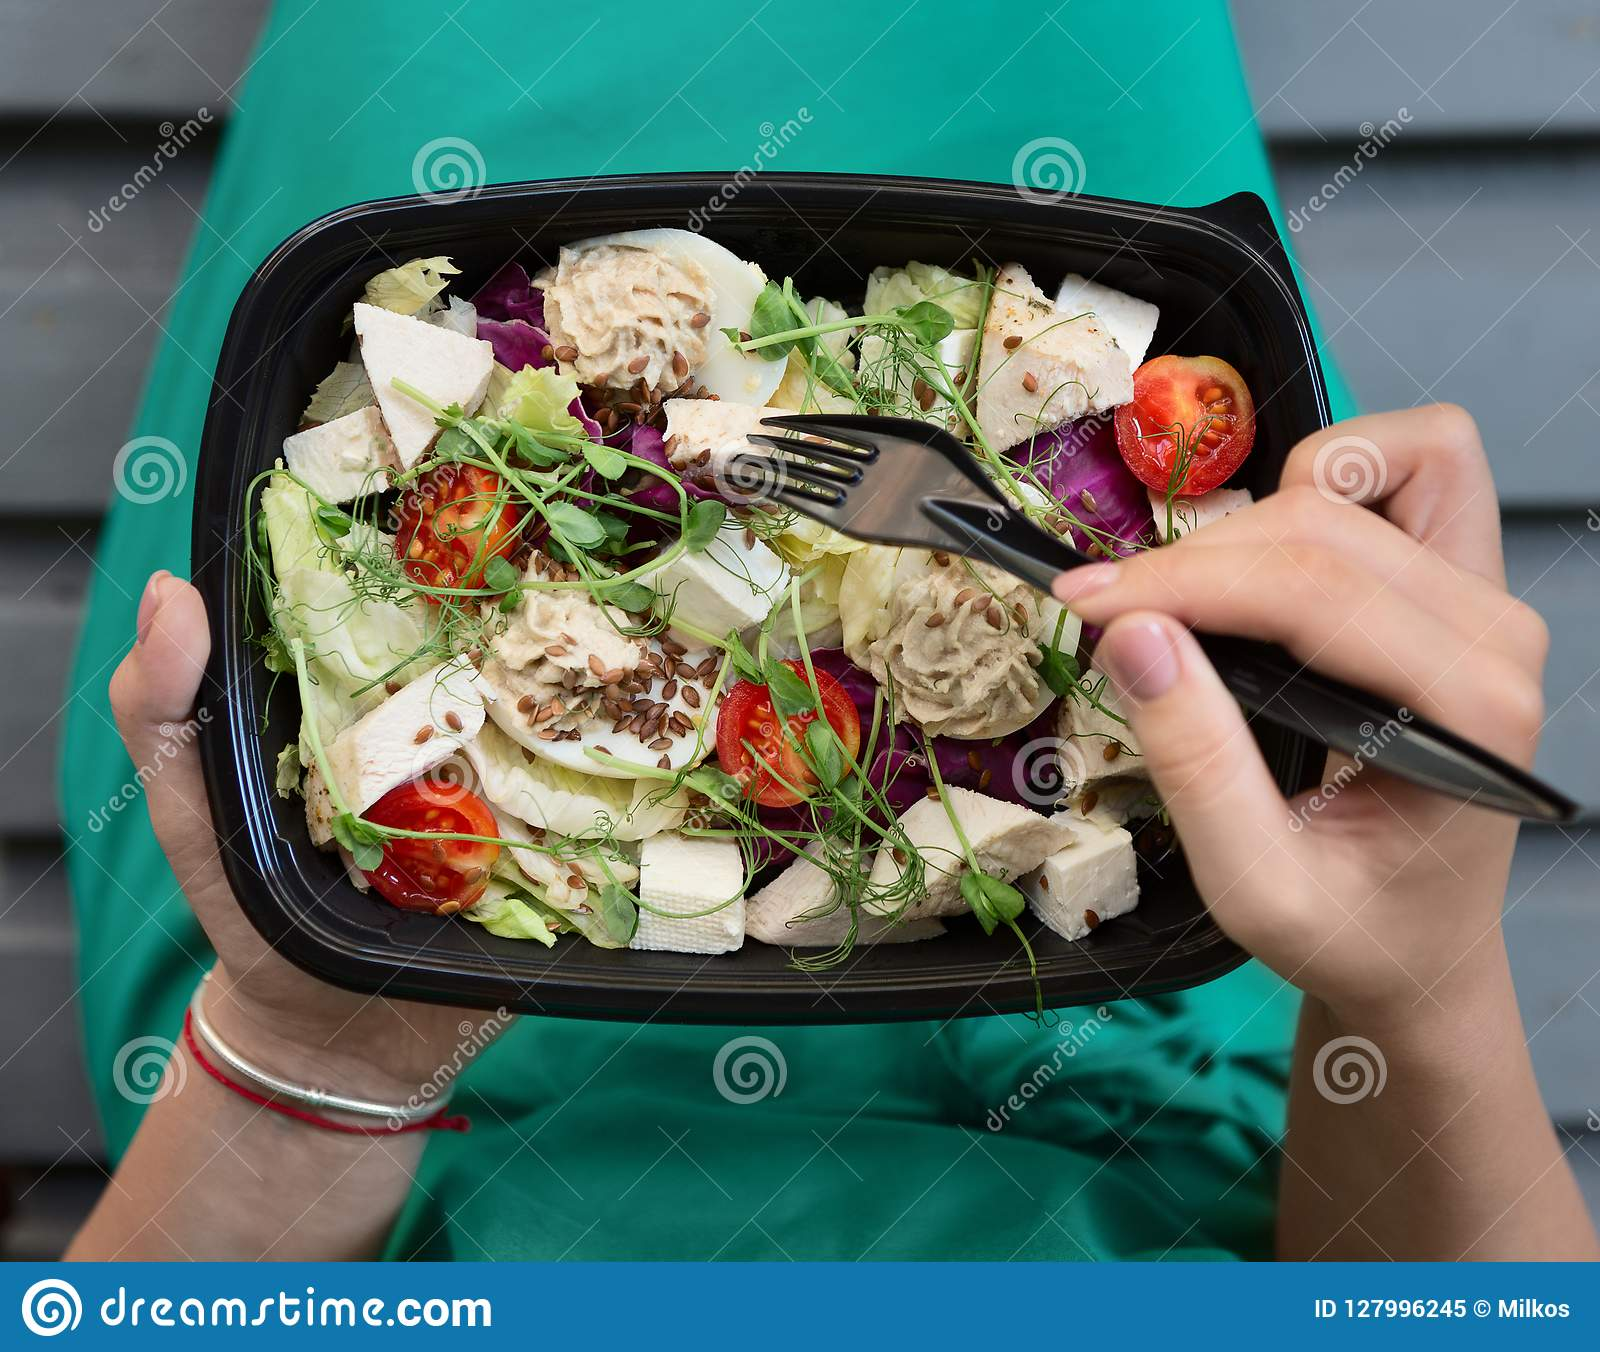 Woman eating healthy food at lunch time